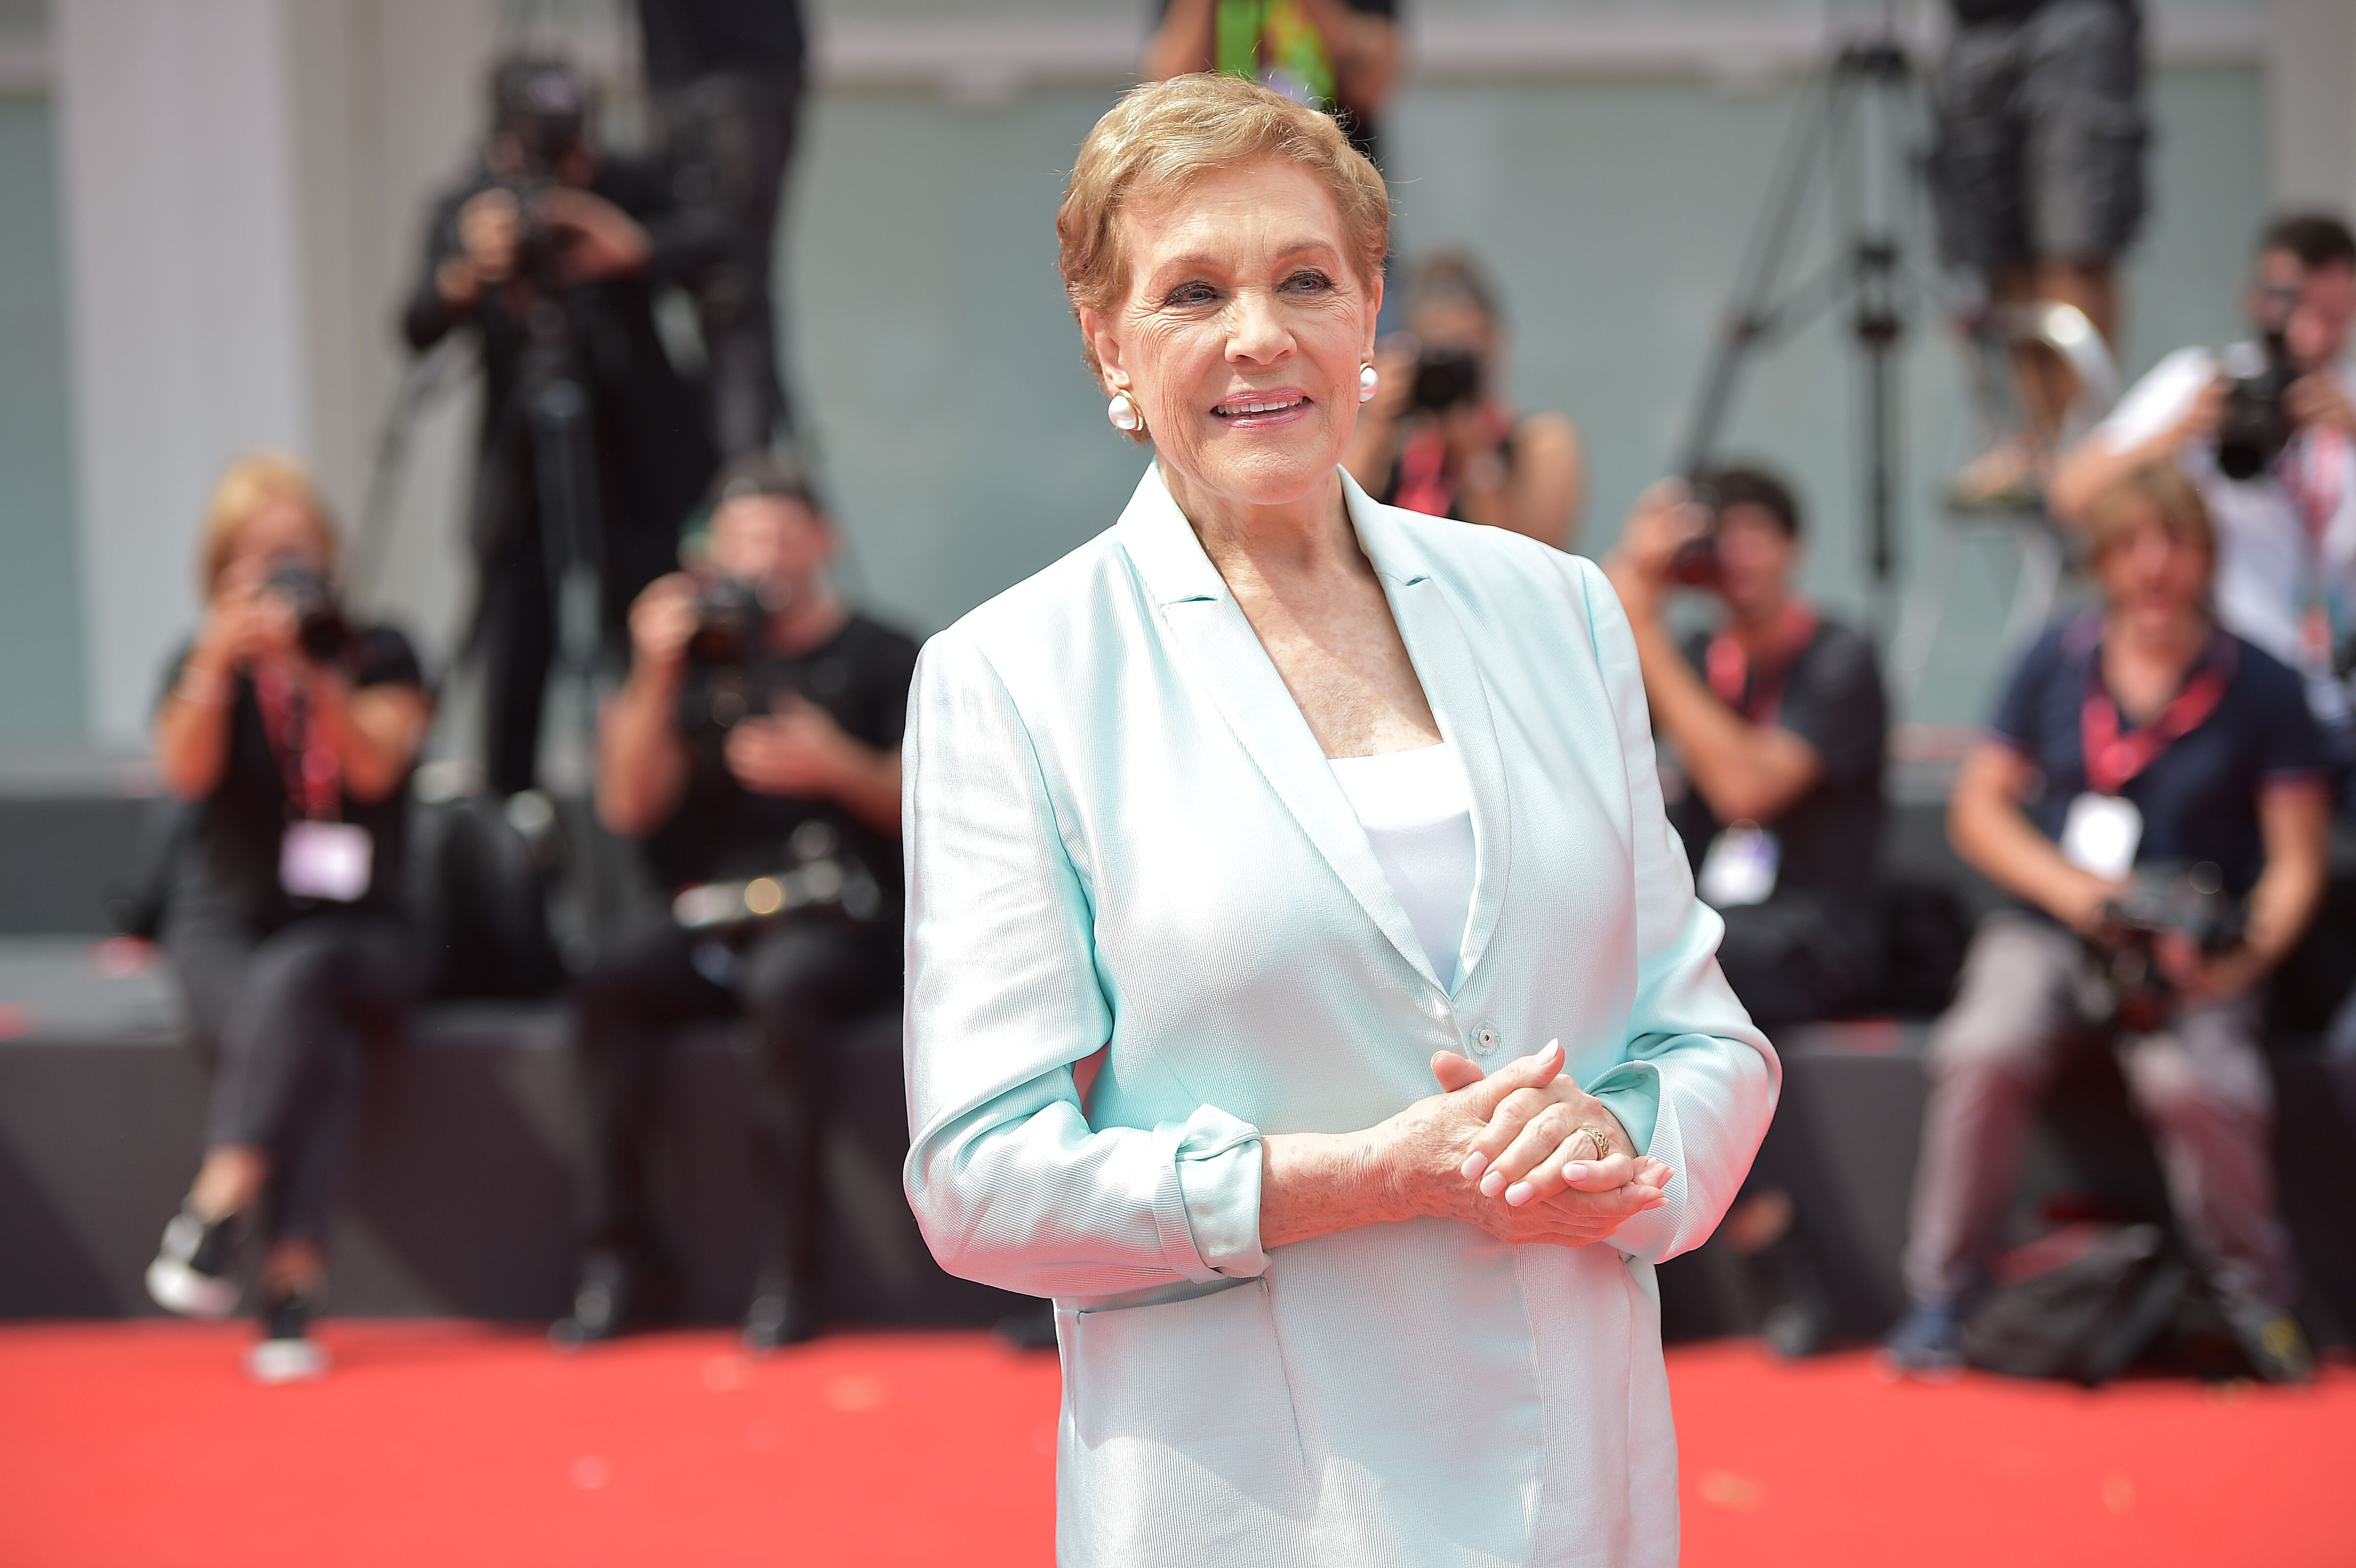 Julie Andrews arrives to be awarded the Golden Lion for Lifetime Achievement during the 76th Venice Film Festival at Sala Grande on September 02, 2019 in Venice, Italy. | Source: Getty Images